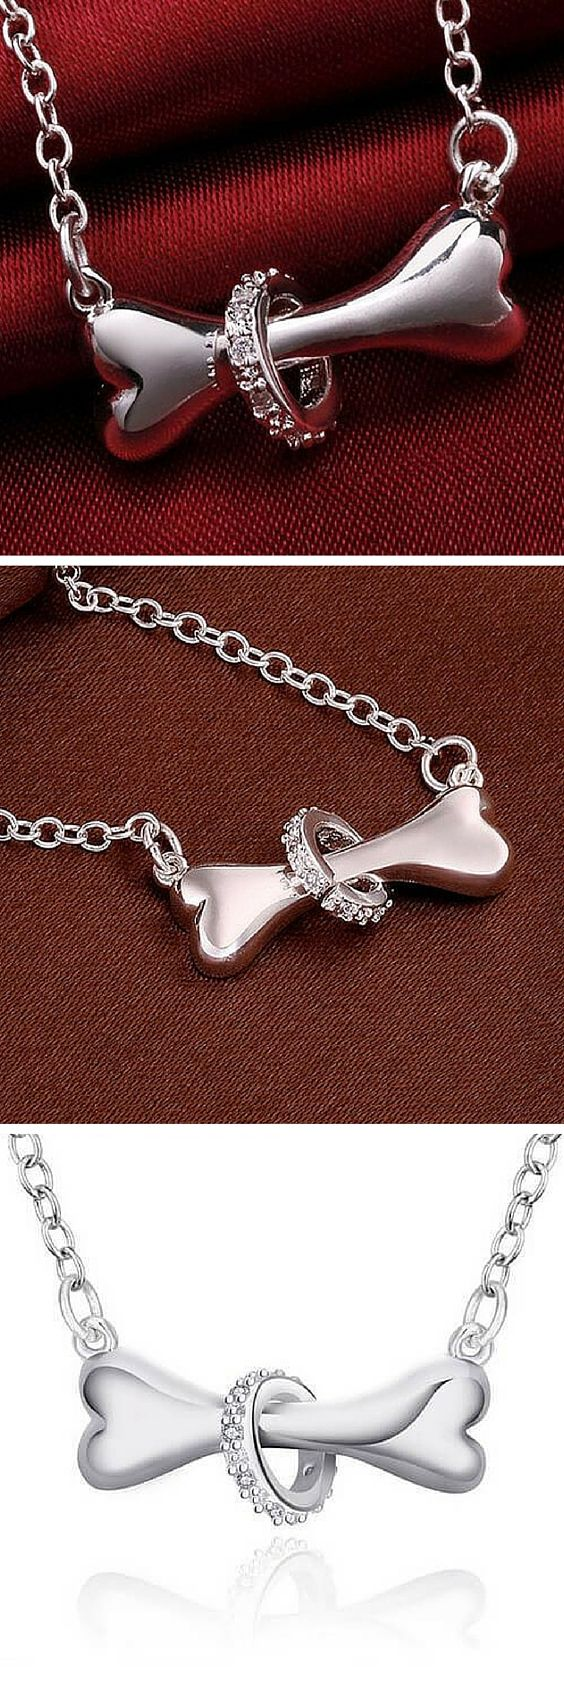 Love Dogs? Then this is Dog bone necklace is for you. Get yours now at 50% off! Today only!